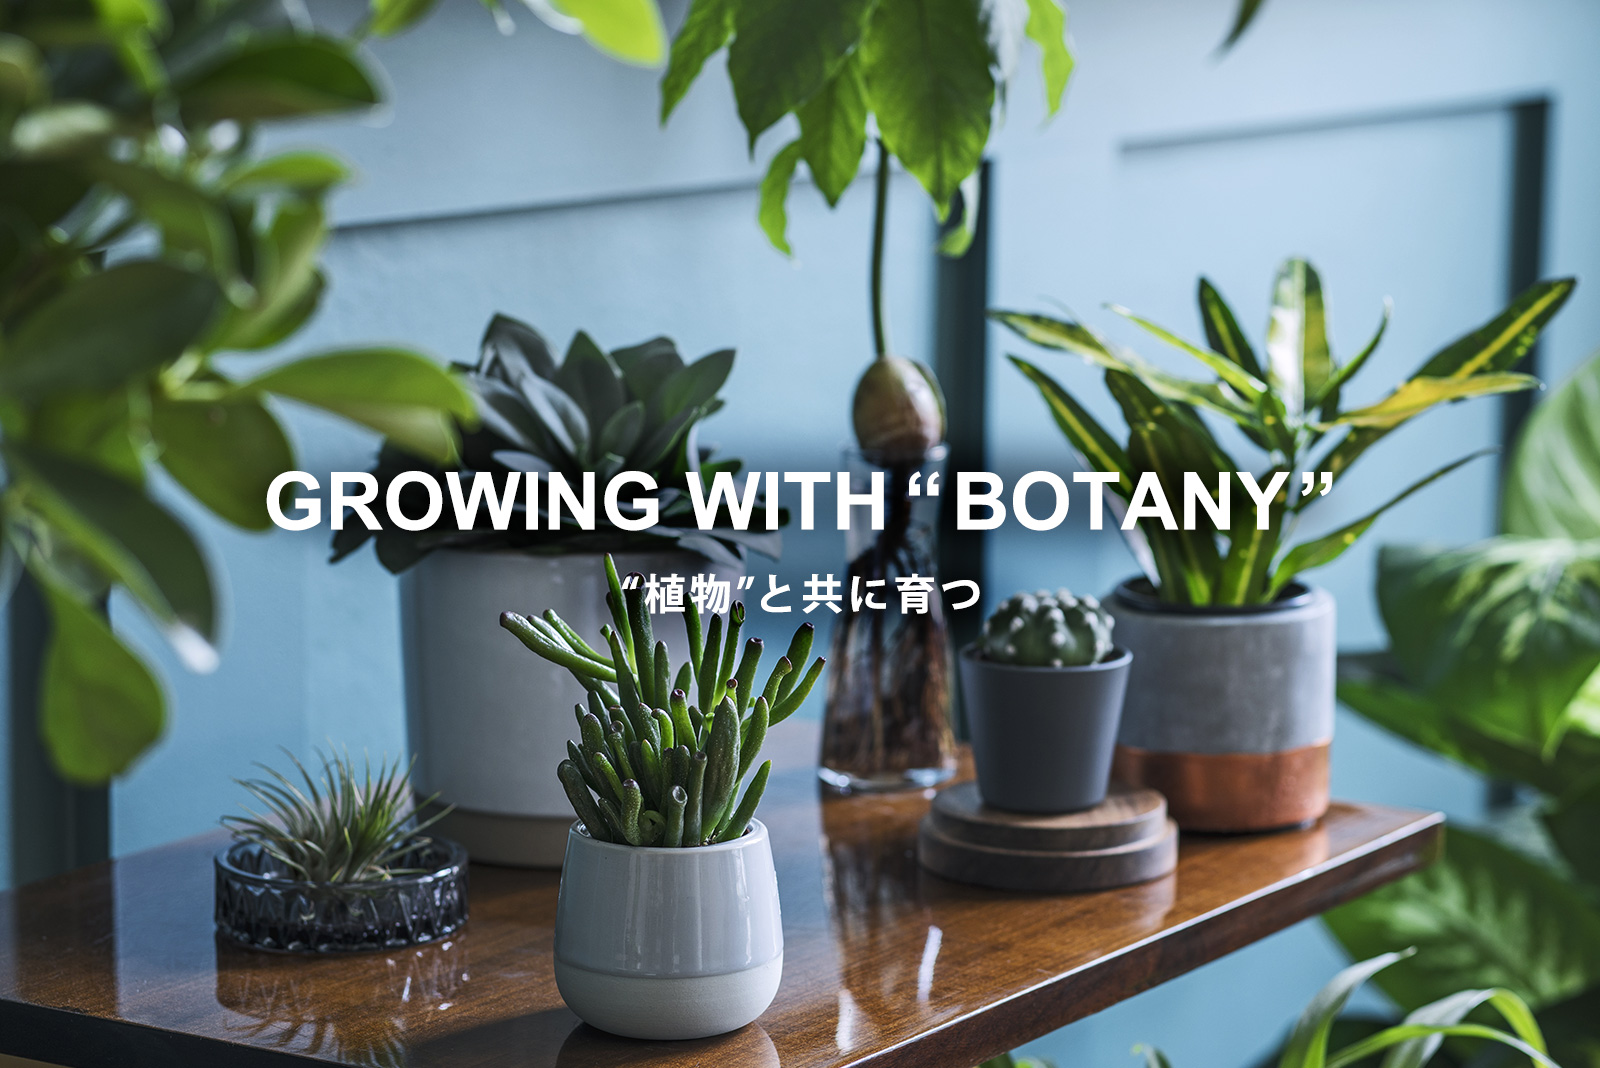 growing with botany 植物と共に育つ リビング